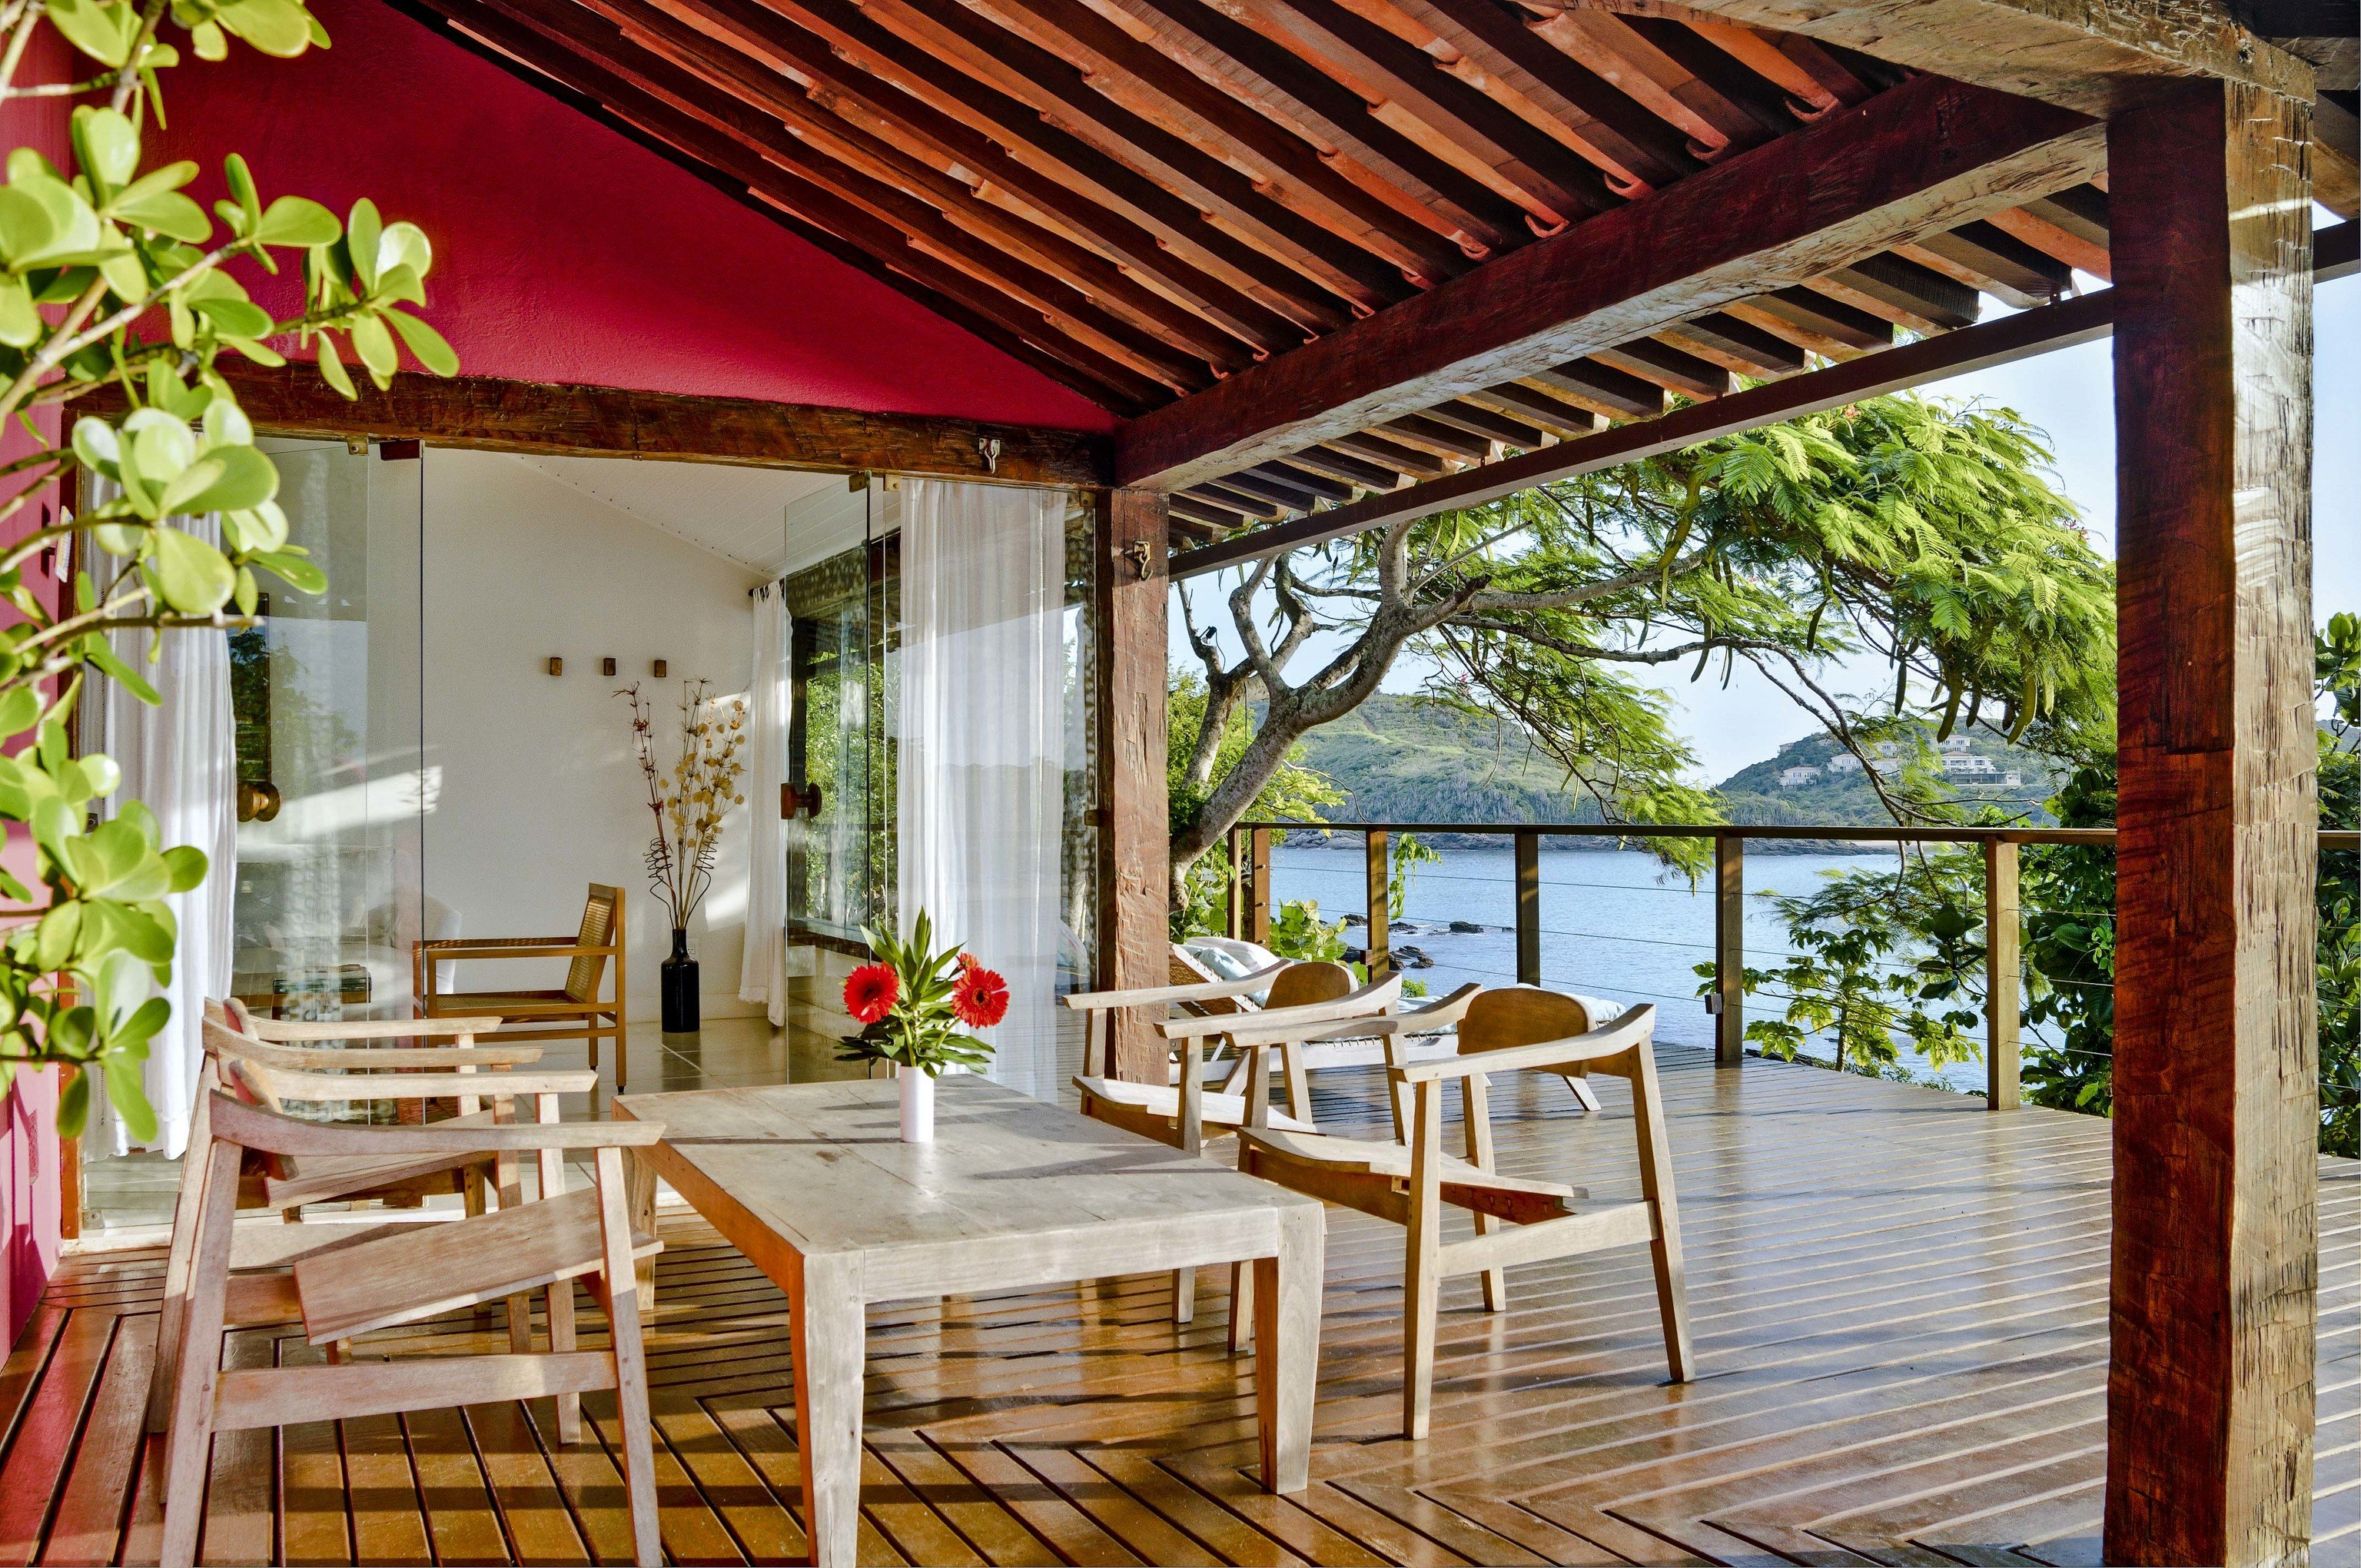 Beaches Brazil Trip Ideas chair building property ceiling Dining real estate outdoor structure Balcony estate wooden Resort porch interior design house Patio furniture Villa pergola backyard area